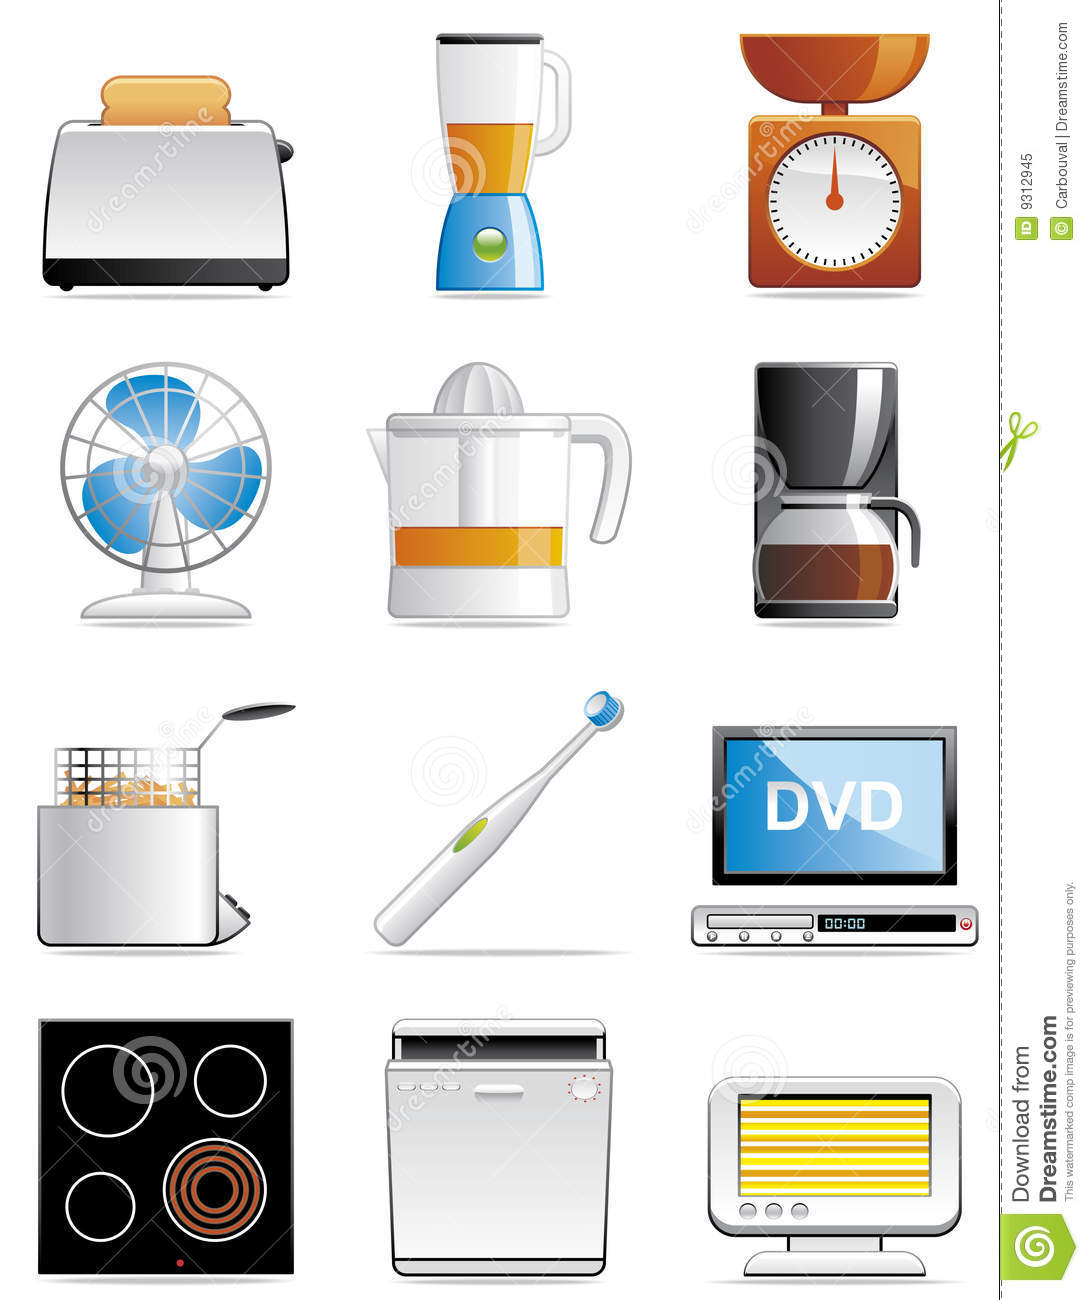 Household Appliance Icons Royalty Free Stock Photo Image